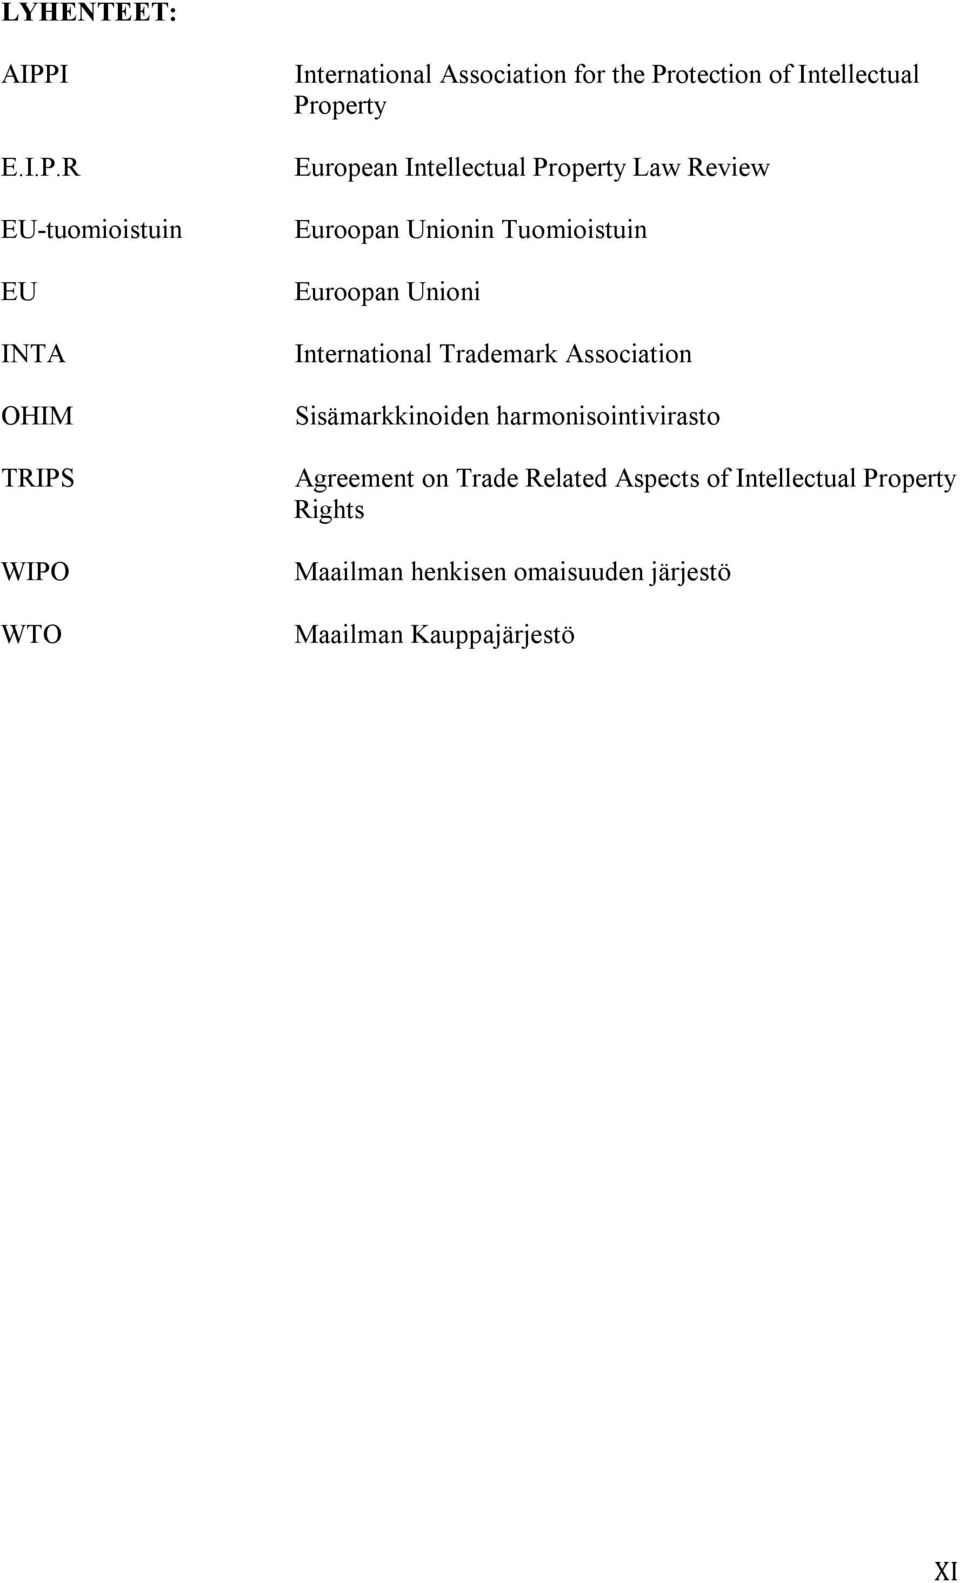 R EU-tuomioistuin EU INTA OHIM TRIPS WIPO WTO International Association for the Protection of Intellectual